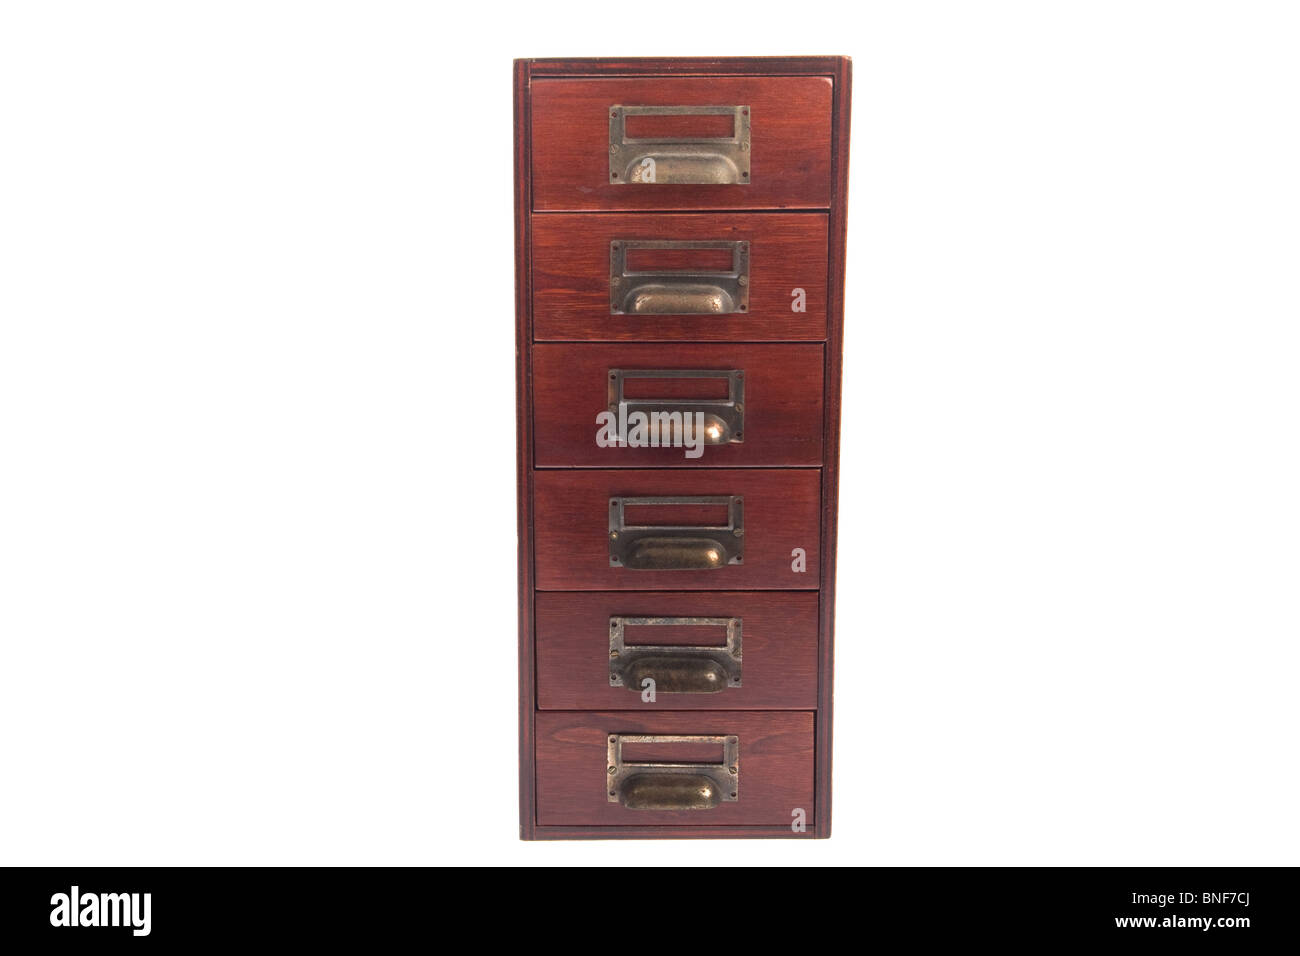 Antique six drawer oak library file card cabinet with brass label holders isolated over white background  sc 1 st  Alamy & Old Wood File Cabinet Stock Photos u0026 Old Wood File Cabinet Stock ...